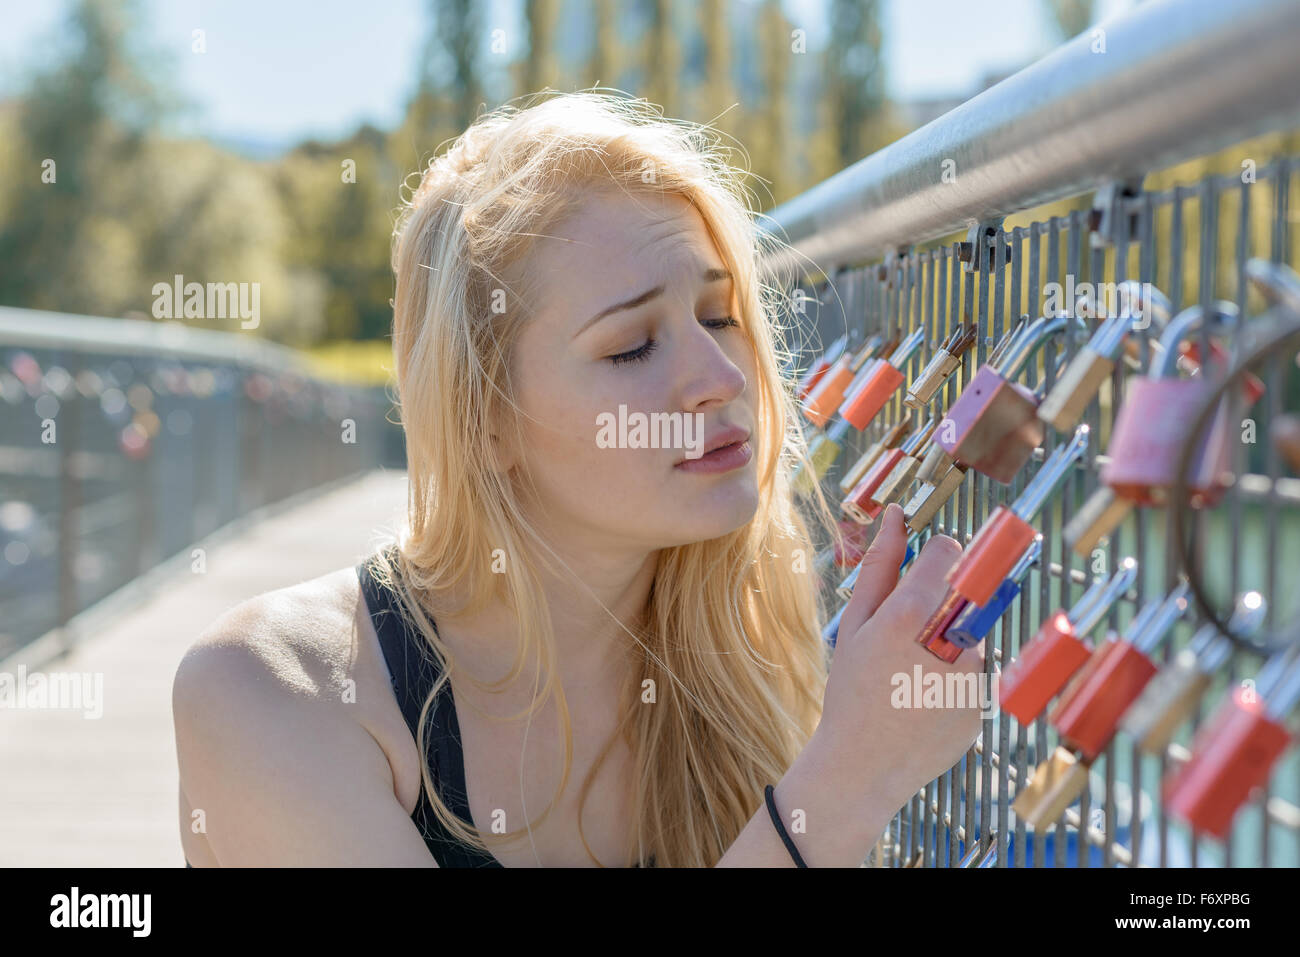 Beautiful young blond woman holding padlocks as a sign for endless love with a sad facial expression - Stock Image